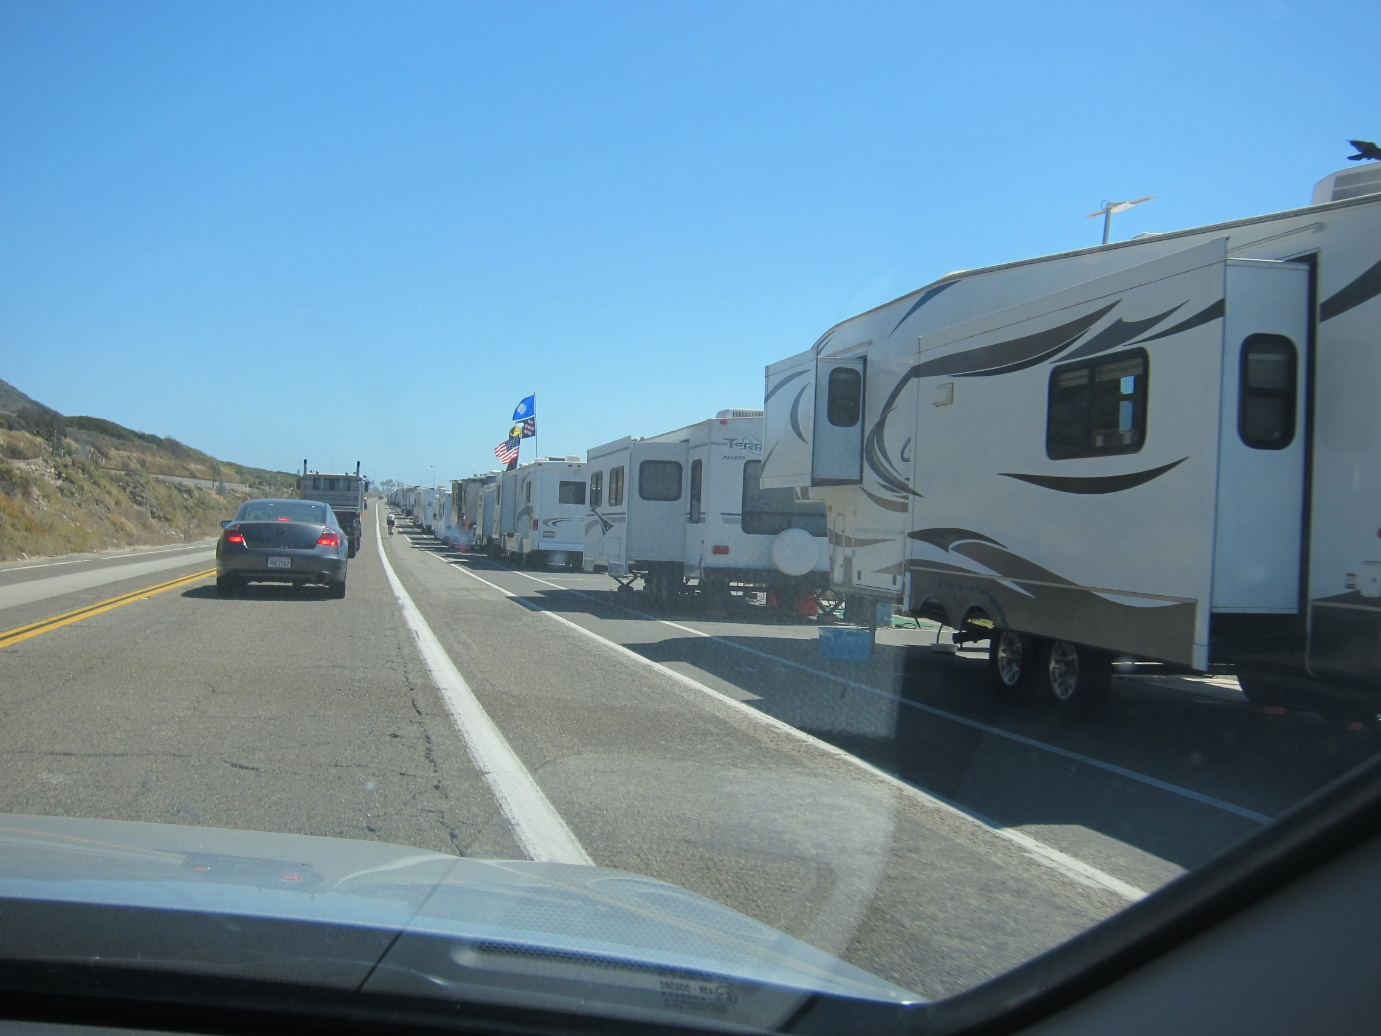 Holidaying in an RV